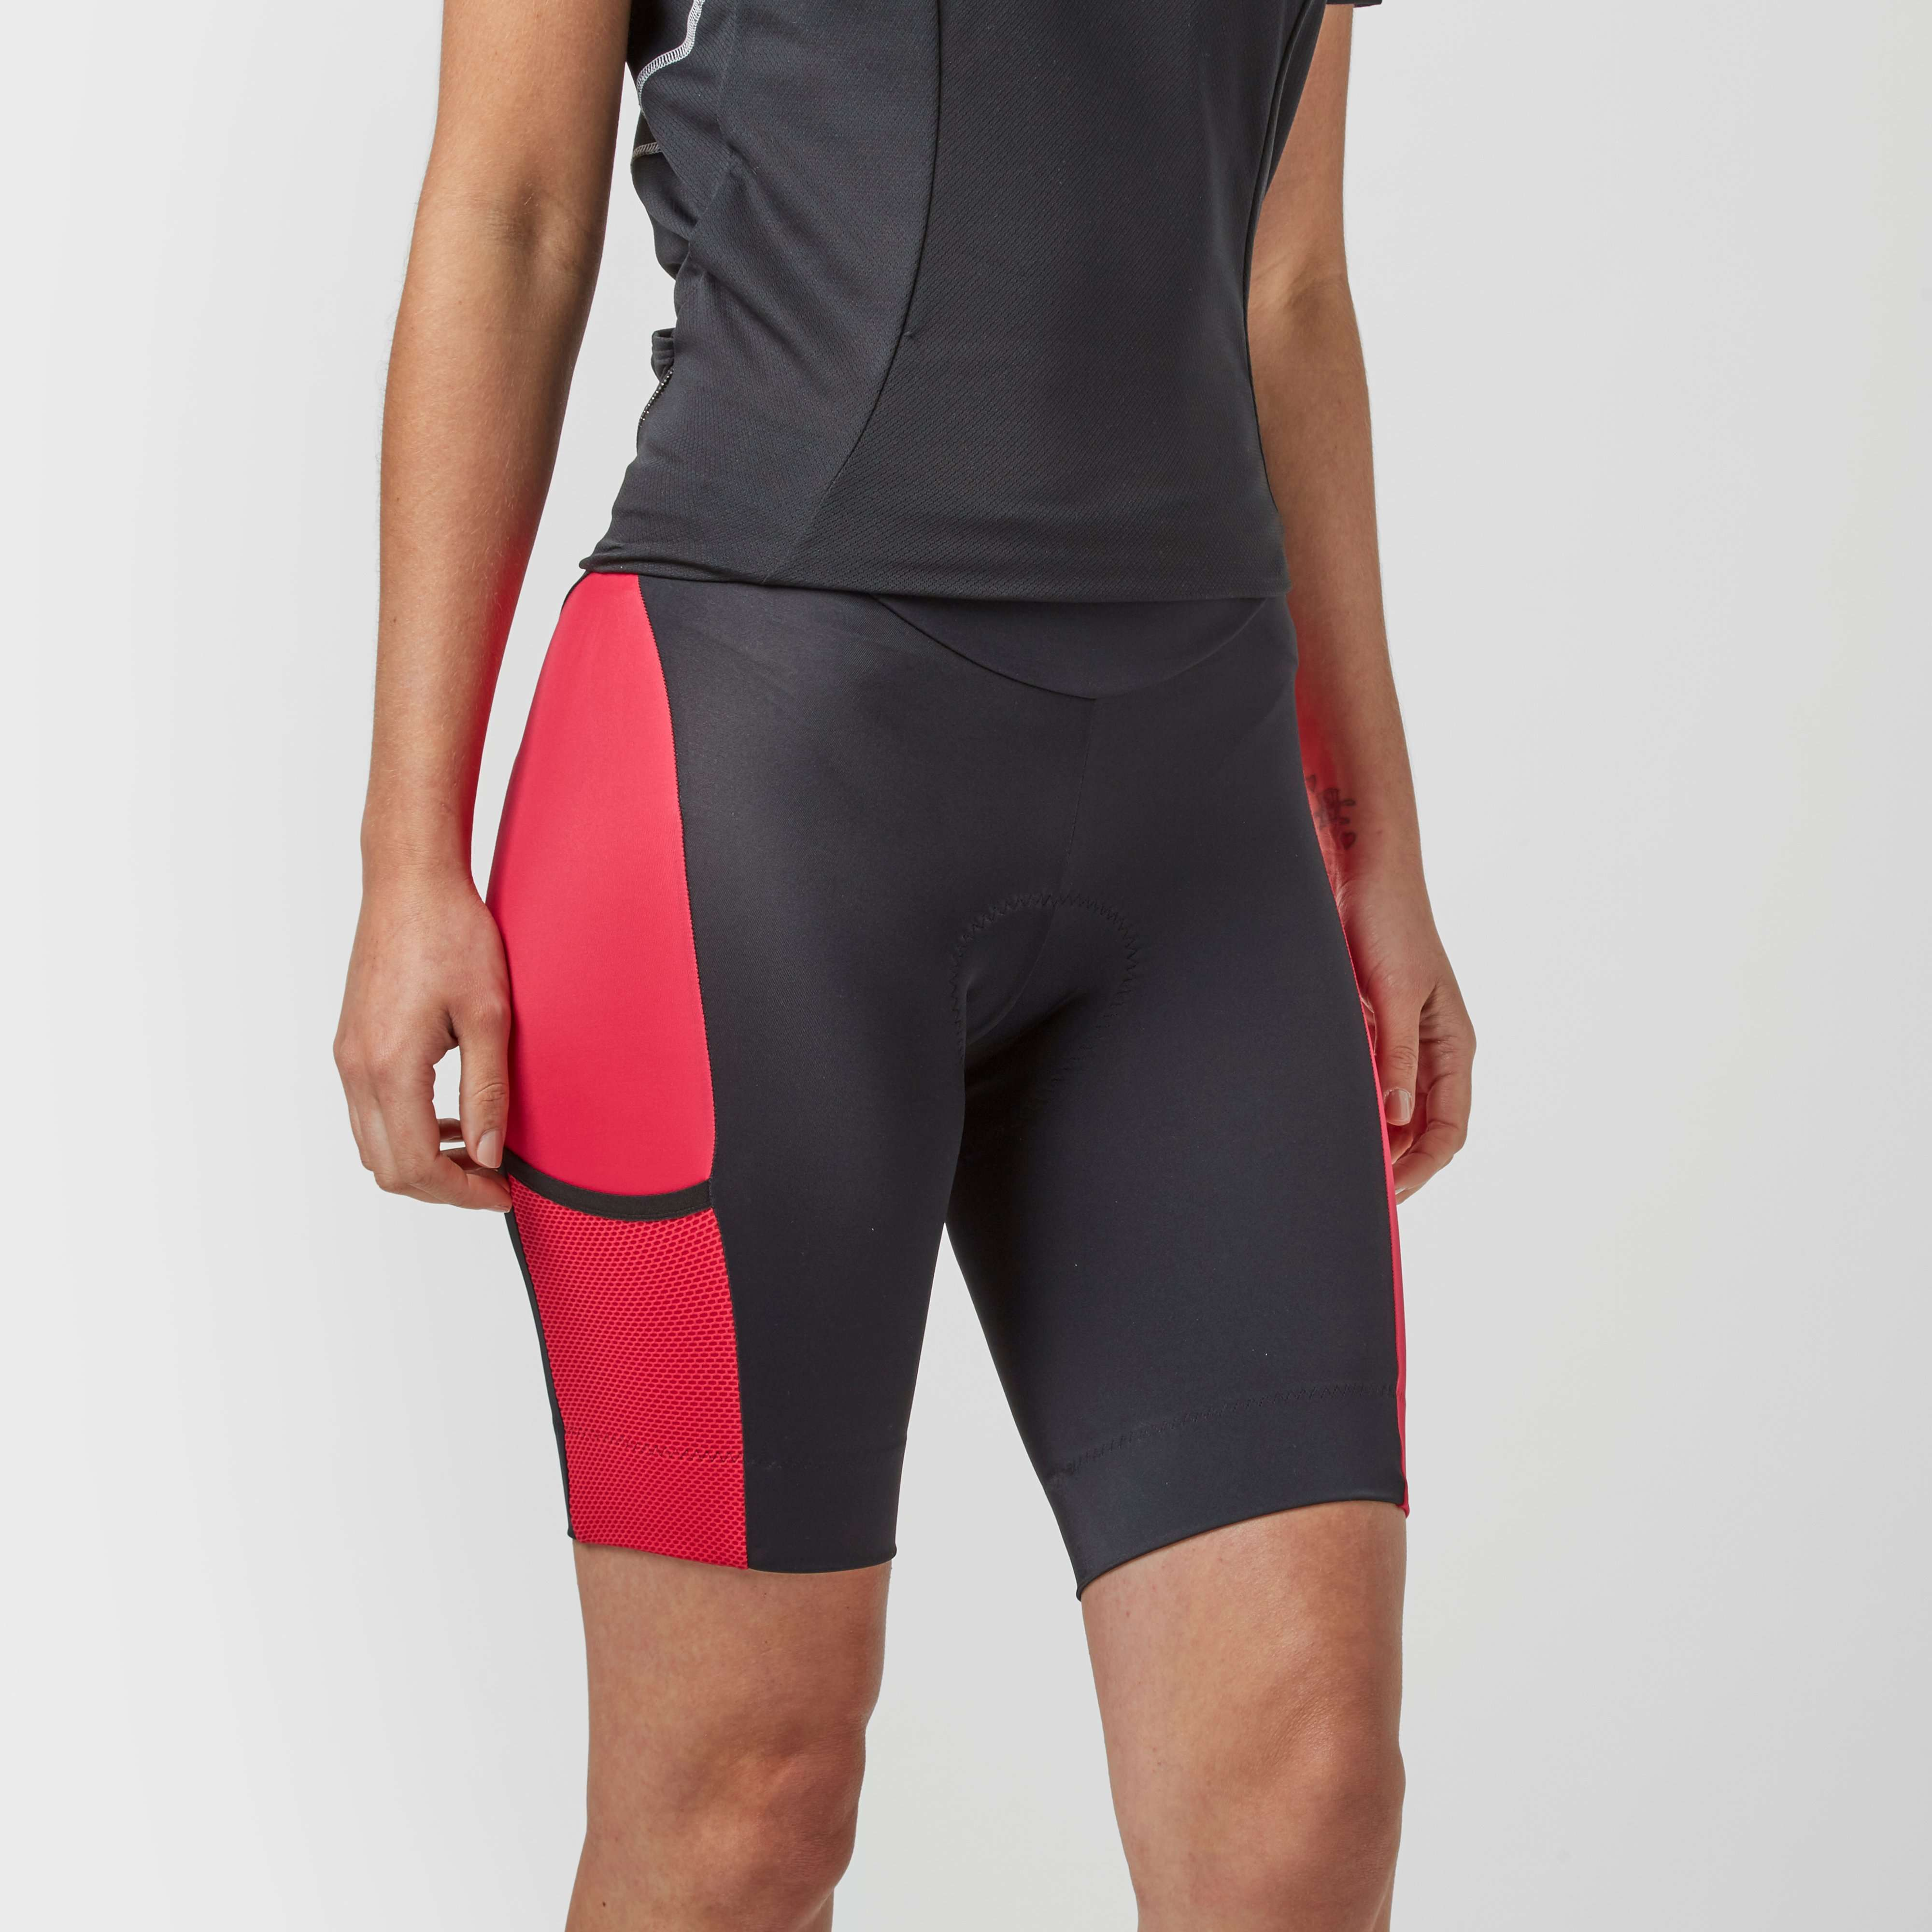 GORE Women's Element Tight Cycling Shorts